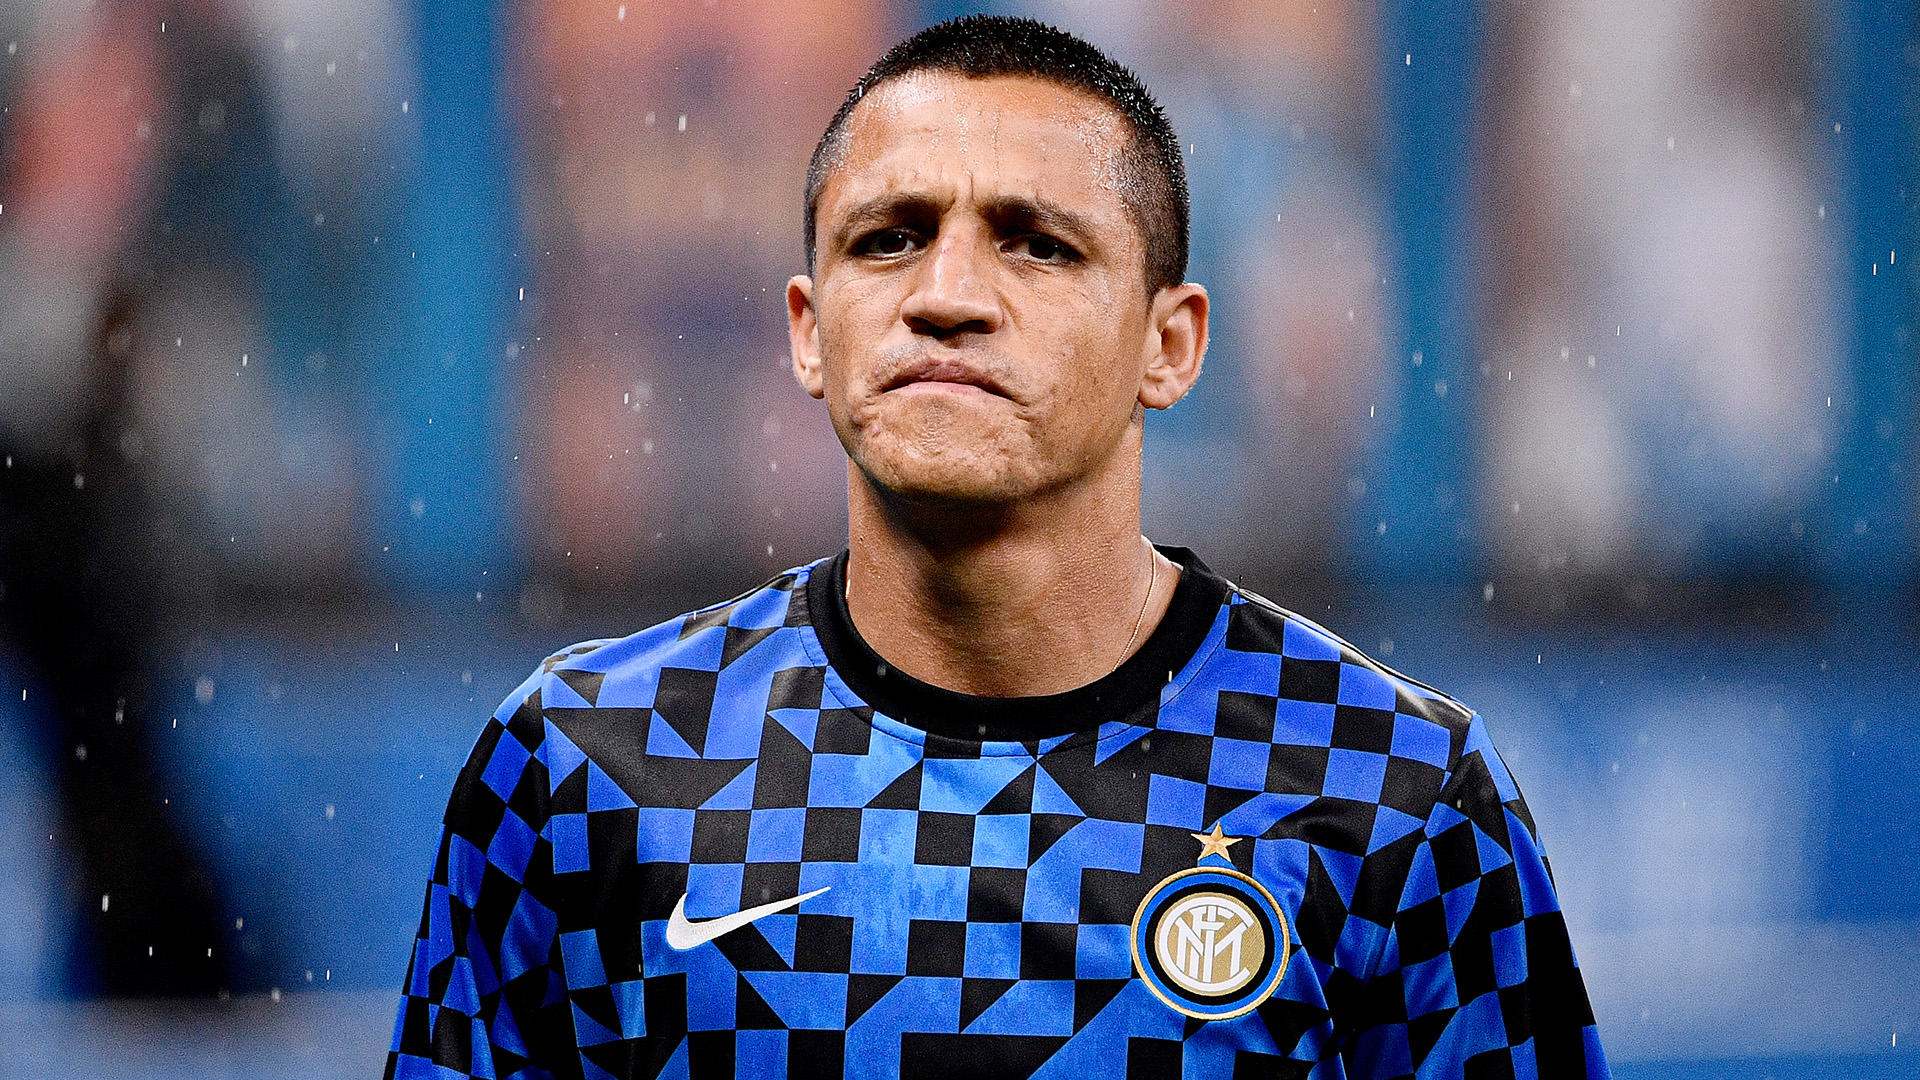 Sanchez doubtful for Europa League semi-final as Inter confirm hamstring injury